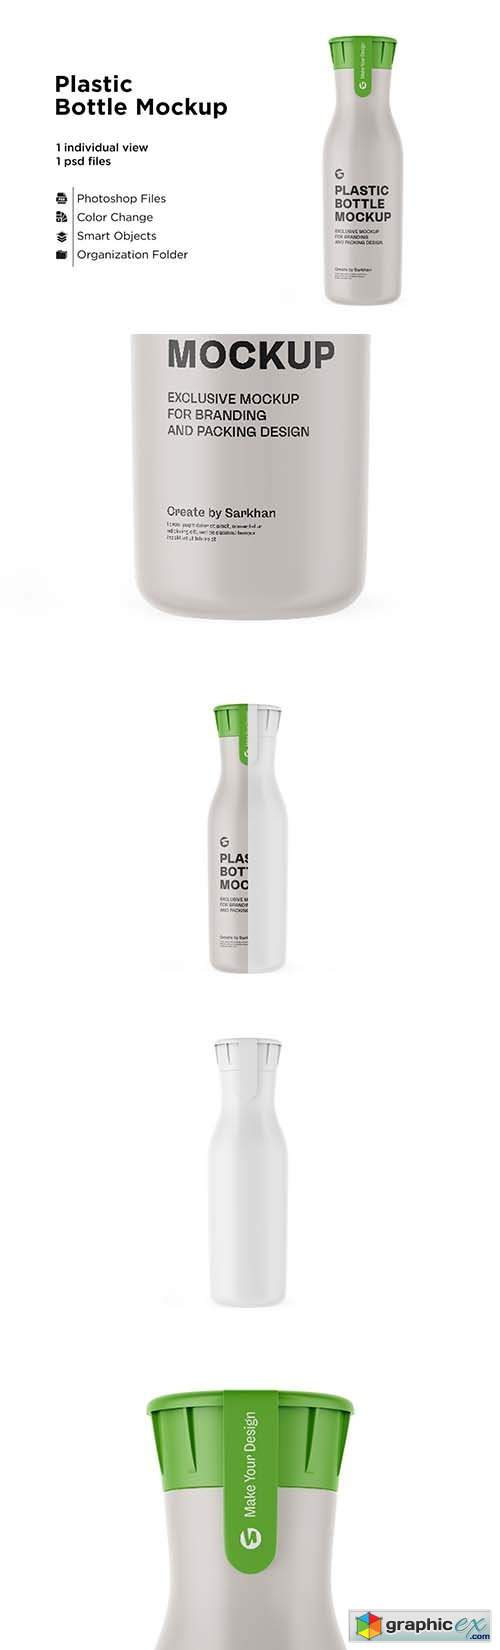 Matte Plastic Bottle With Mockup